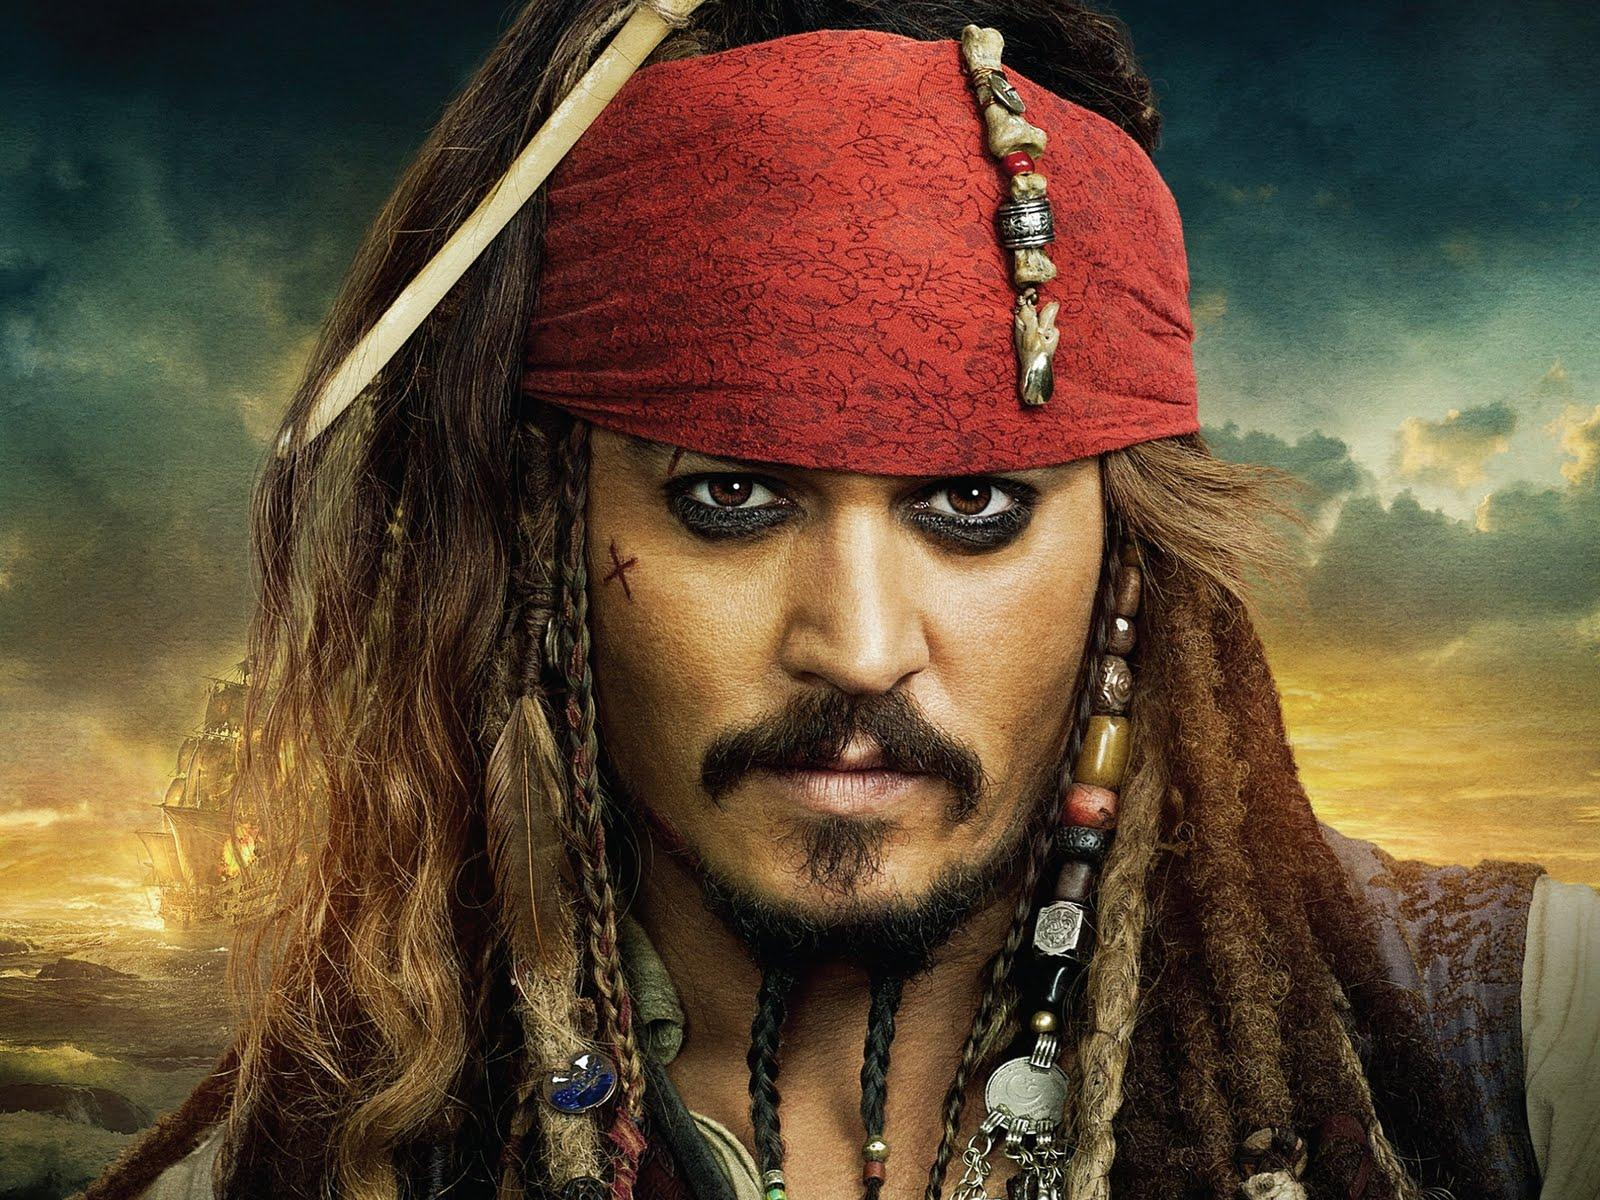 Free 3D Wallpapers Download: Pirates of the caribbean wallpapers